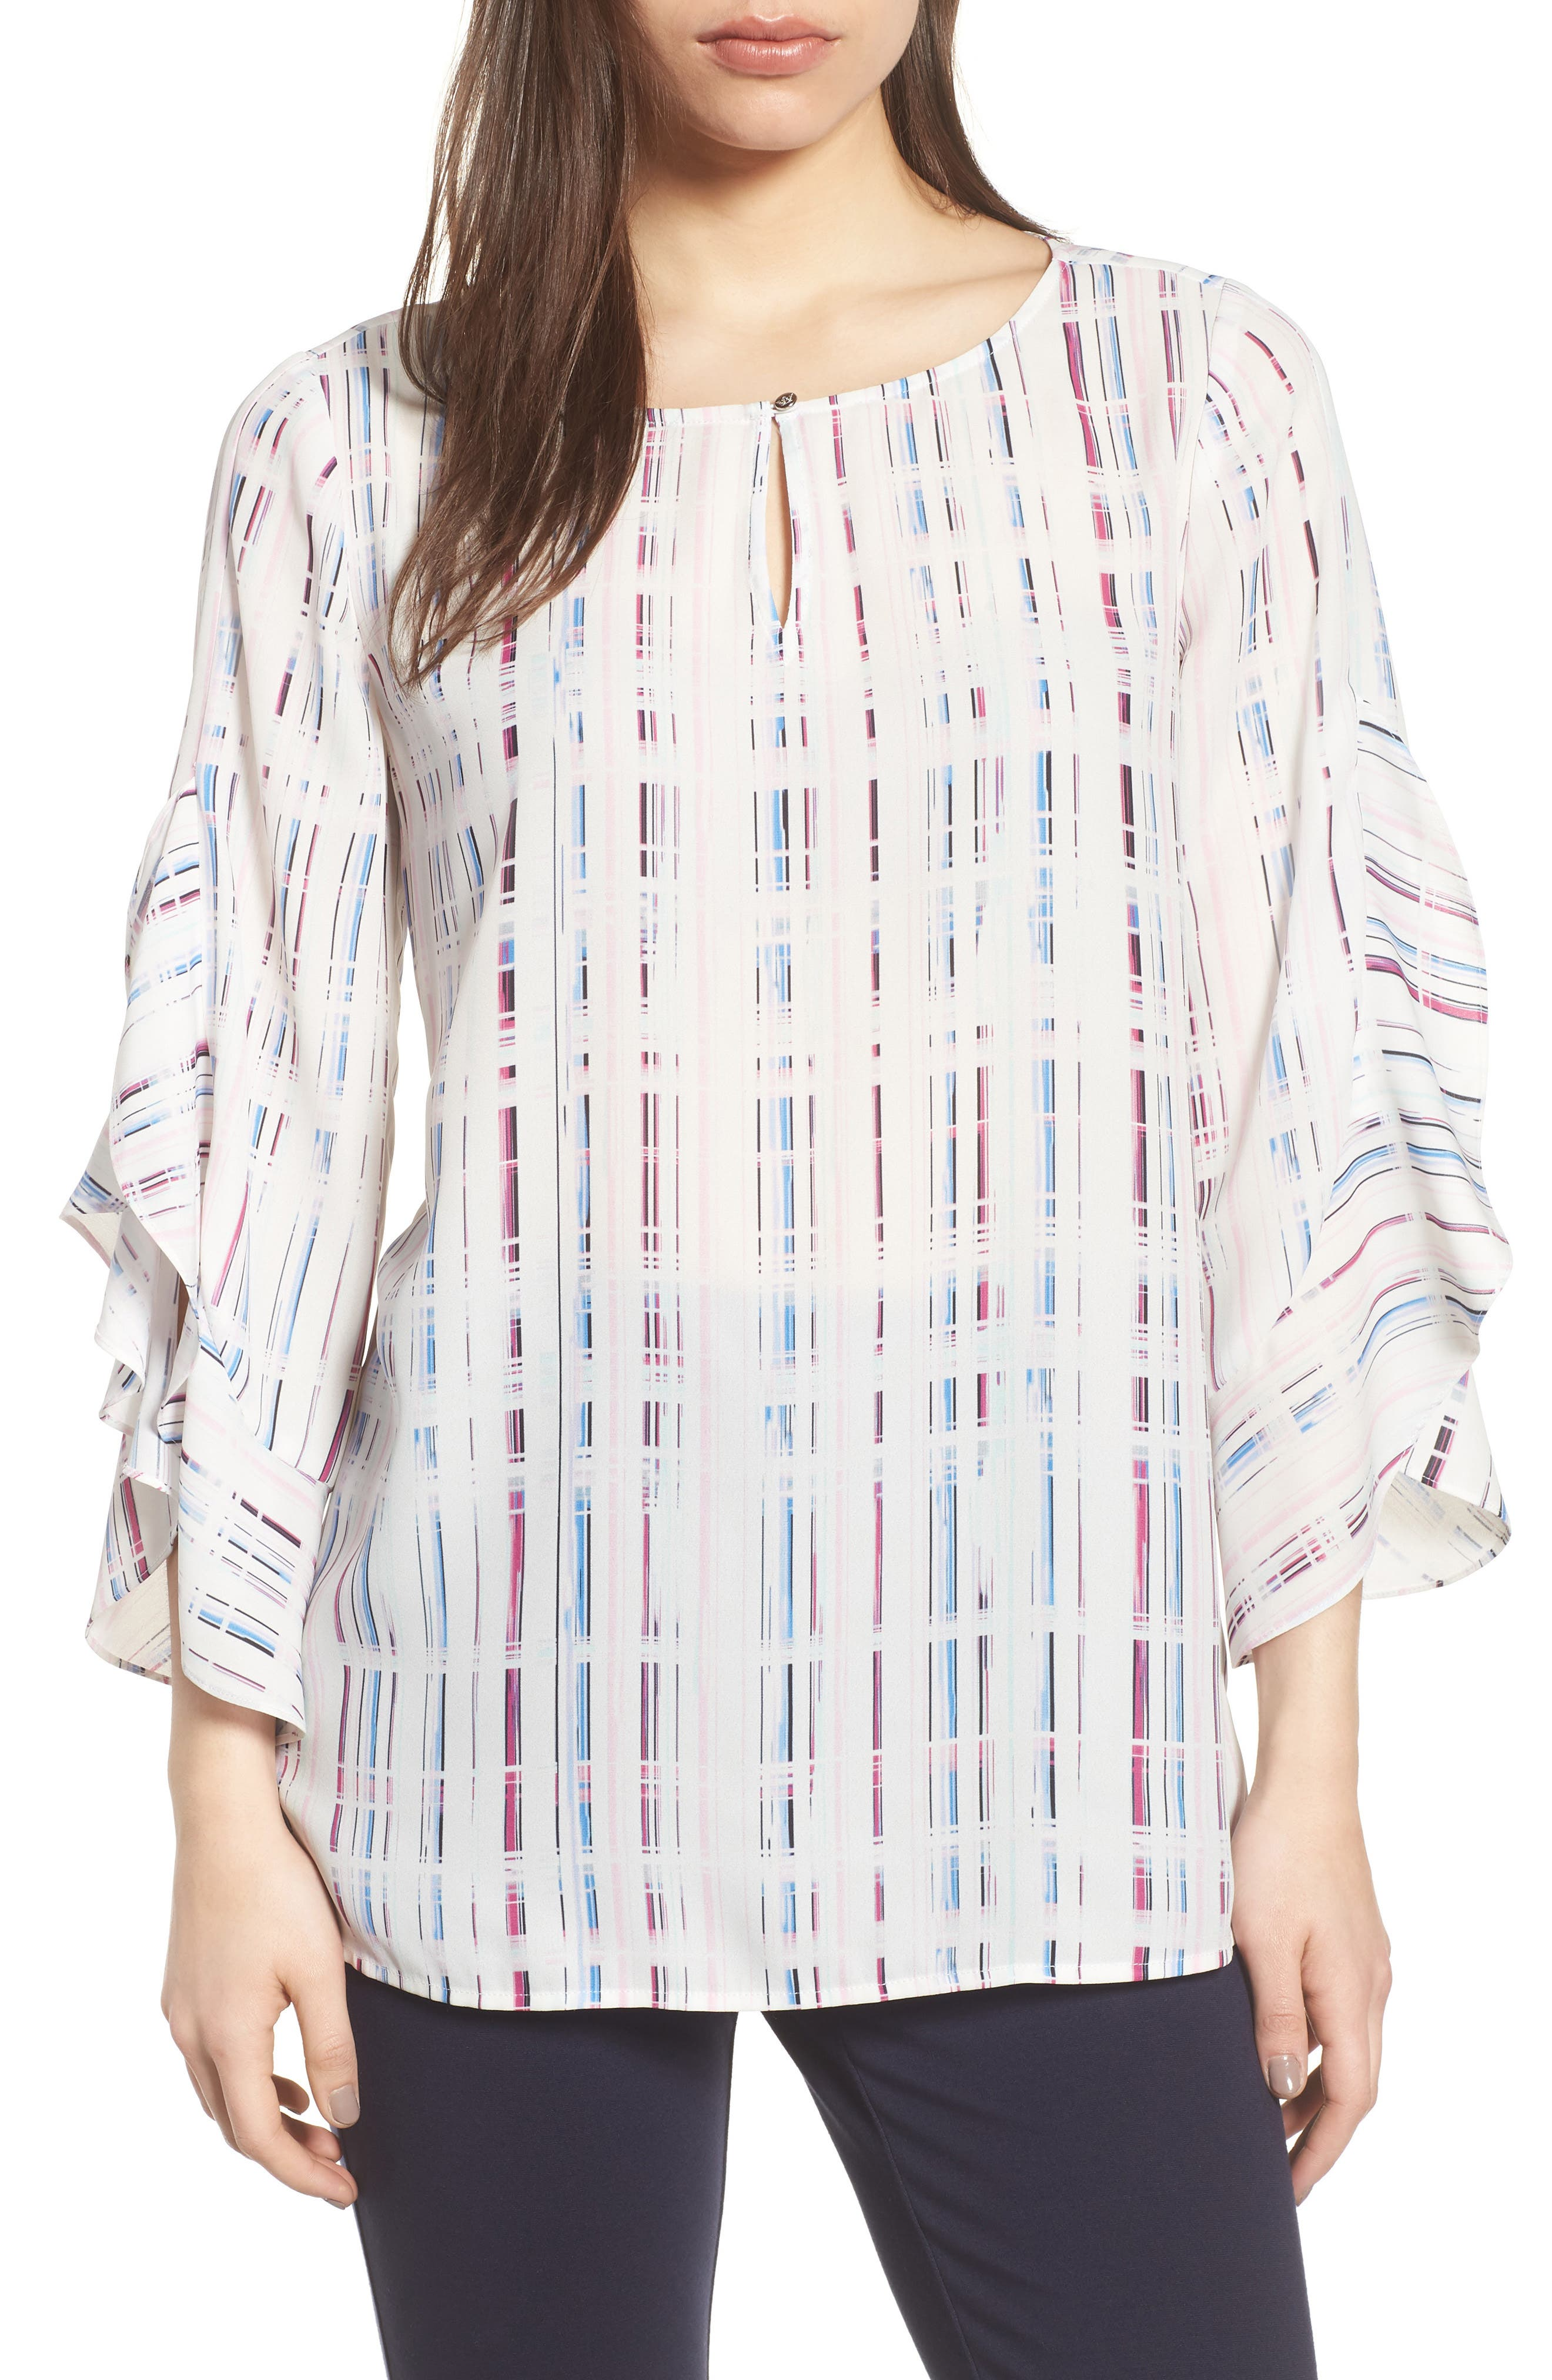 Prism Grid Print Blouse,                             Main thumbnail 1, color,                             103-New Ivory